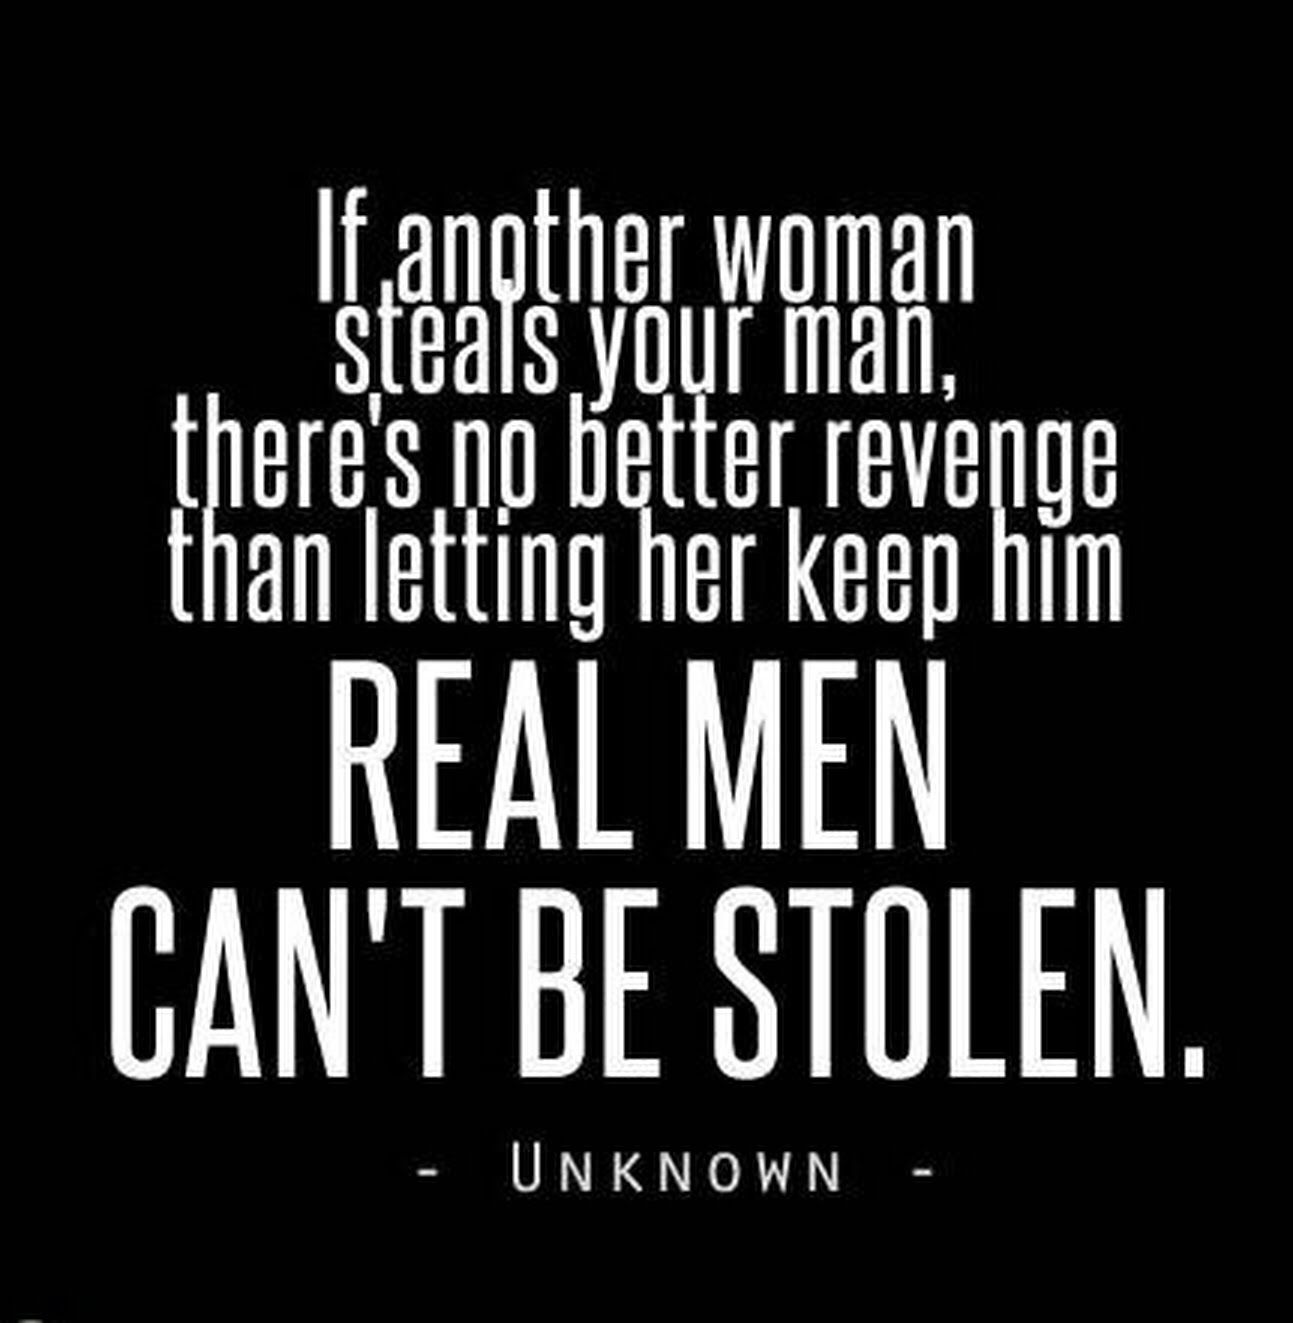 Pin By Kayla Cooper On Whisper Words Of Wisdom Cheating Boyfriend Quotes Cheating Boyfriend Boyfriend Quotes